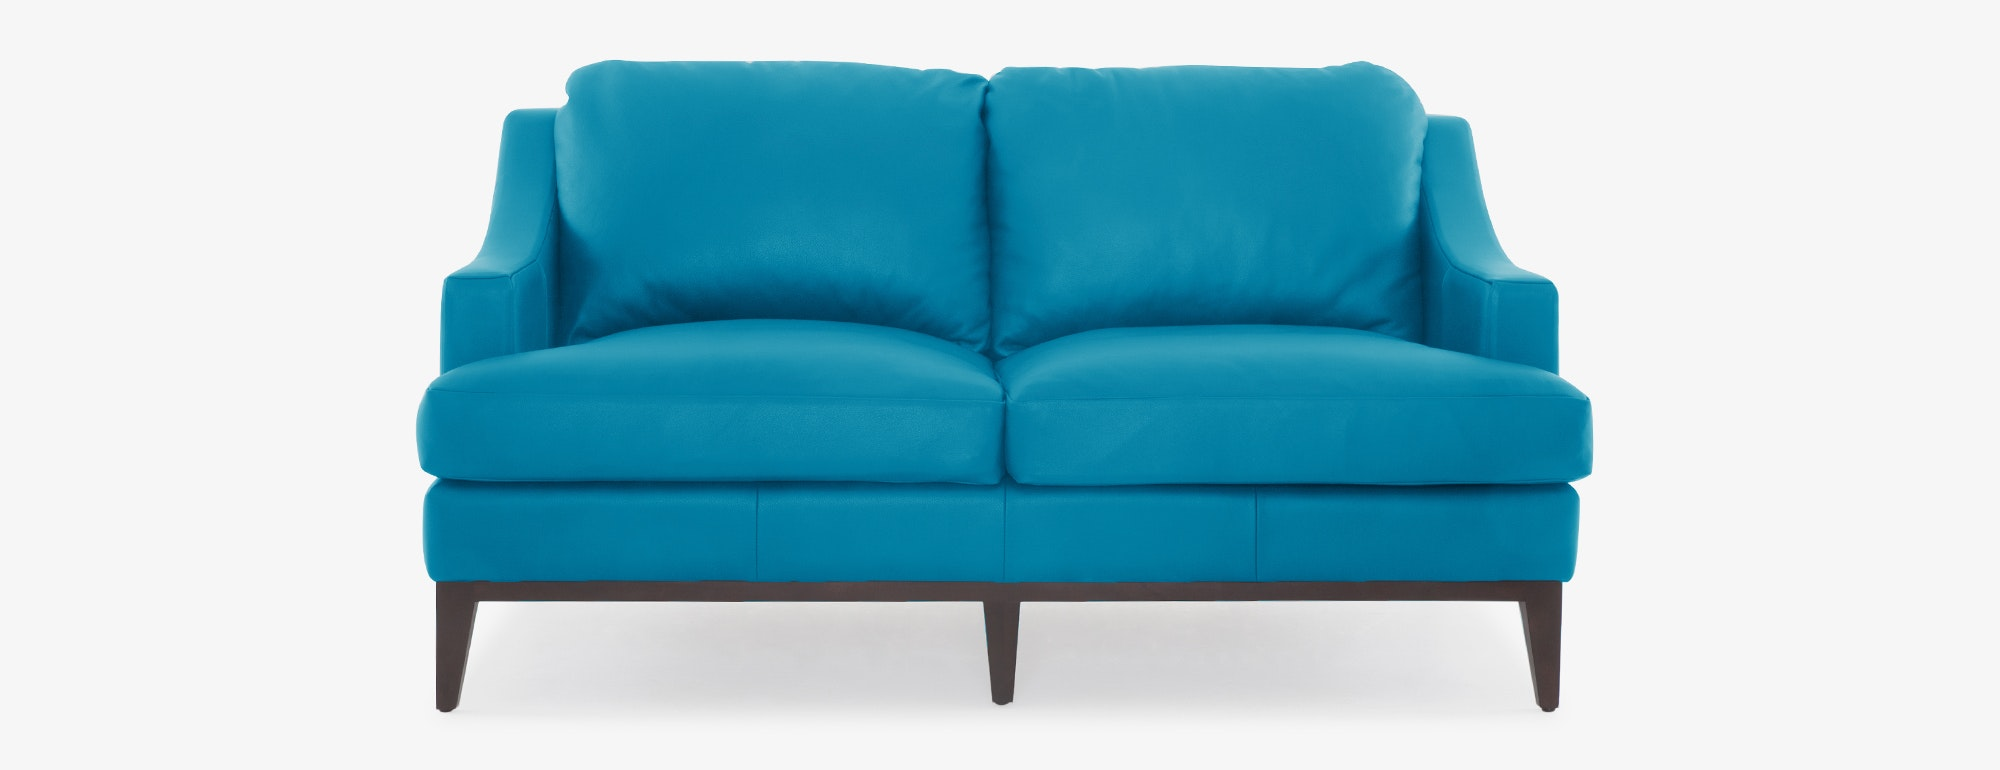 Price Leather Apartment Sofa By Joybrid